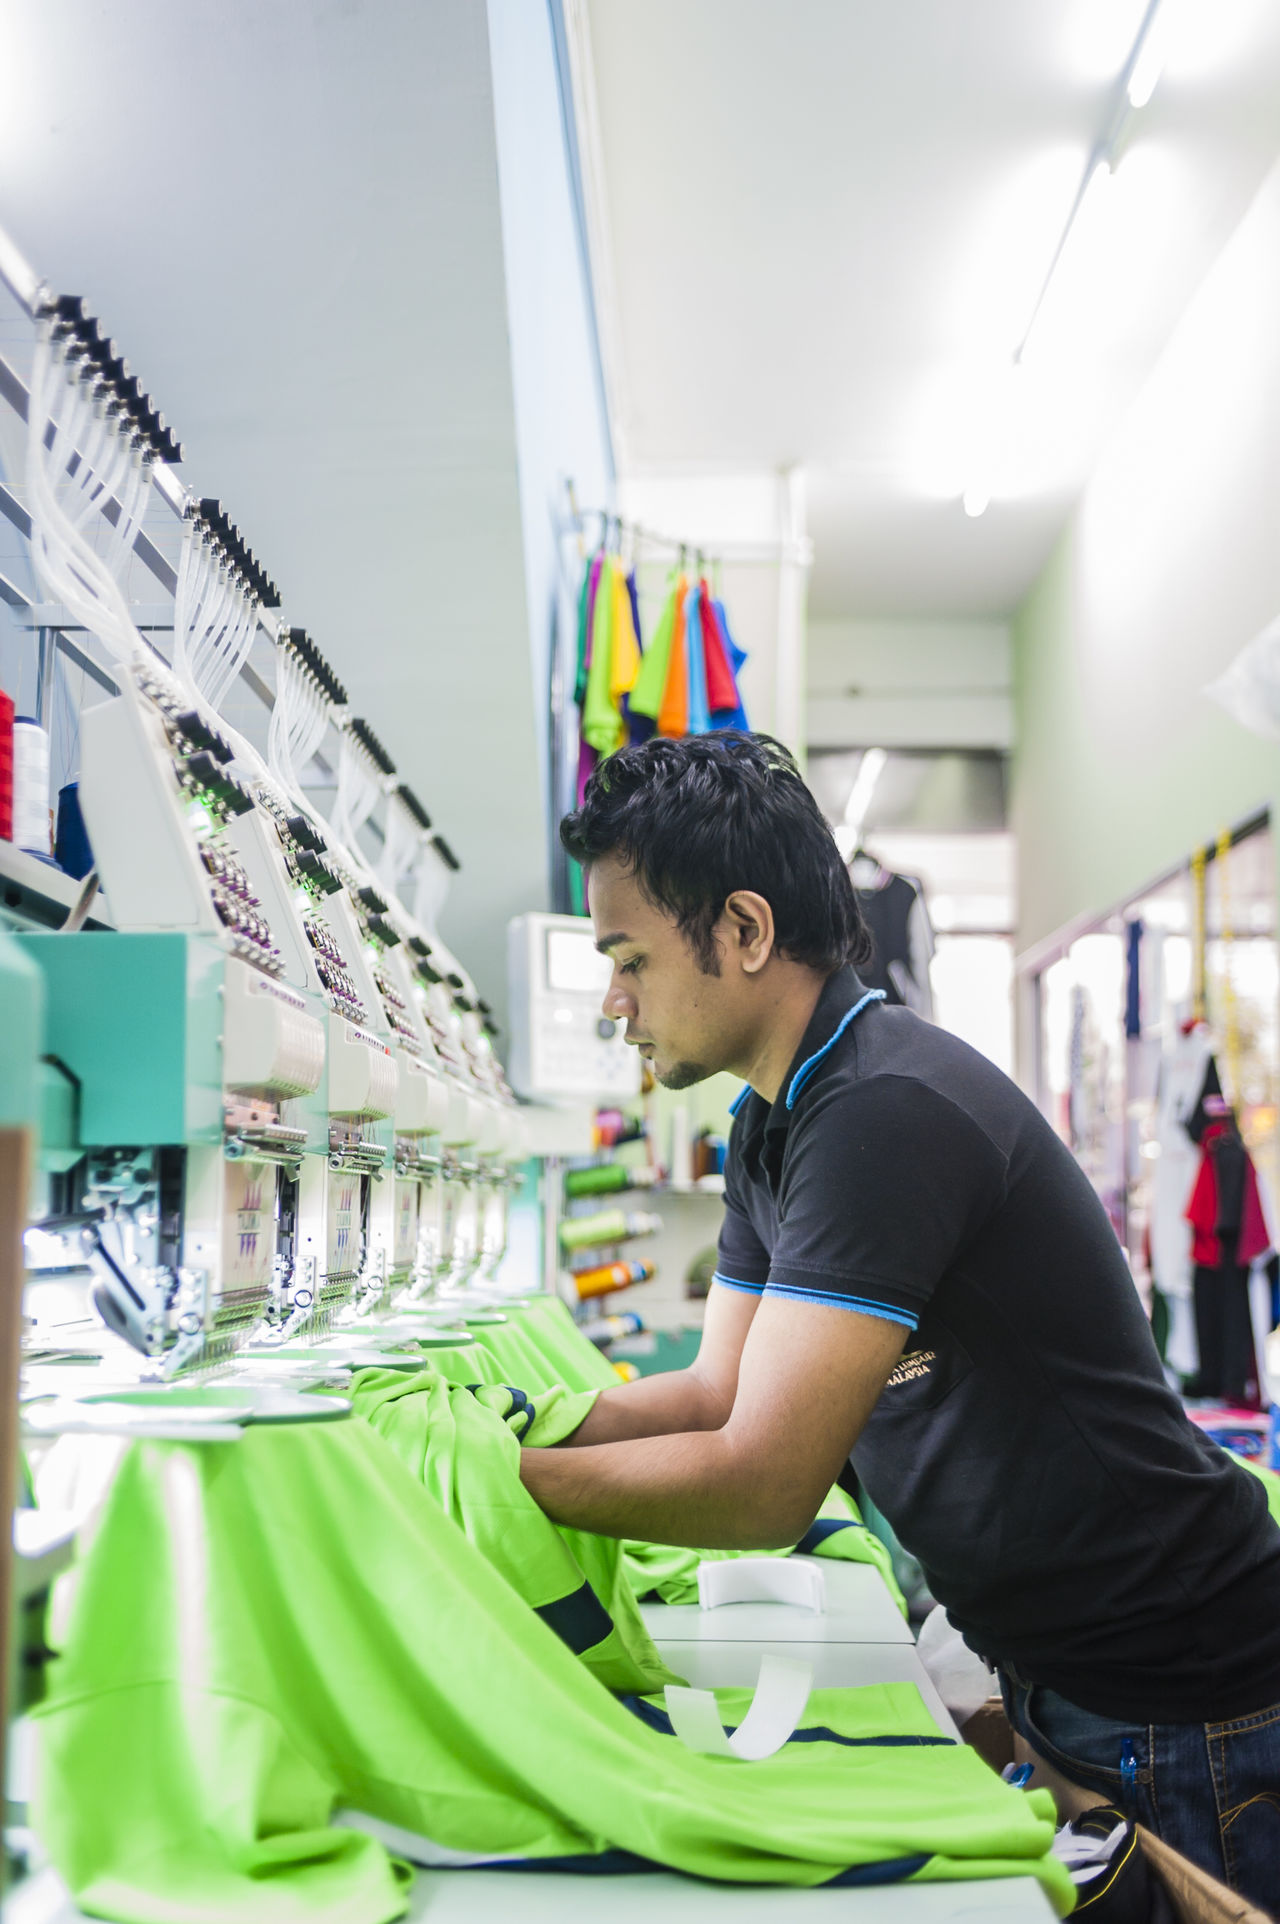 Business Embroidery Human Industrial Industry Machinery Machines Male Man Objects Occupation People Portrait Printing Sewing Machine Still Life Textile Threads Work Working